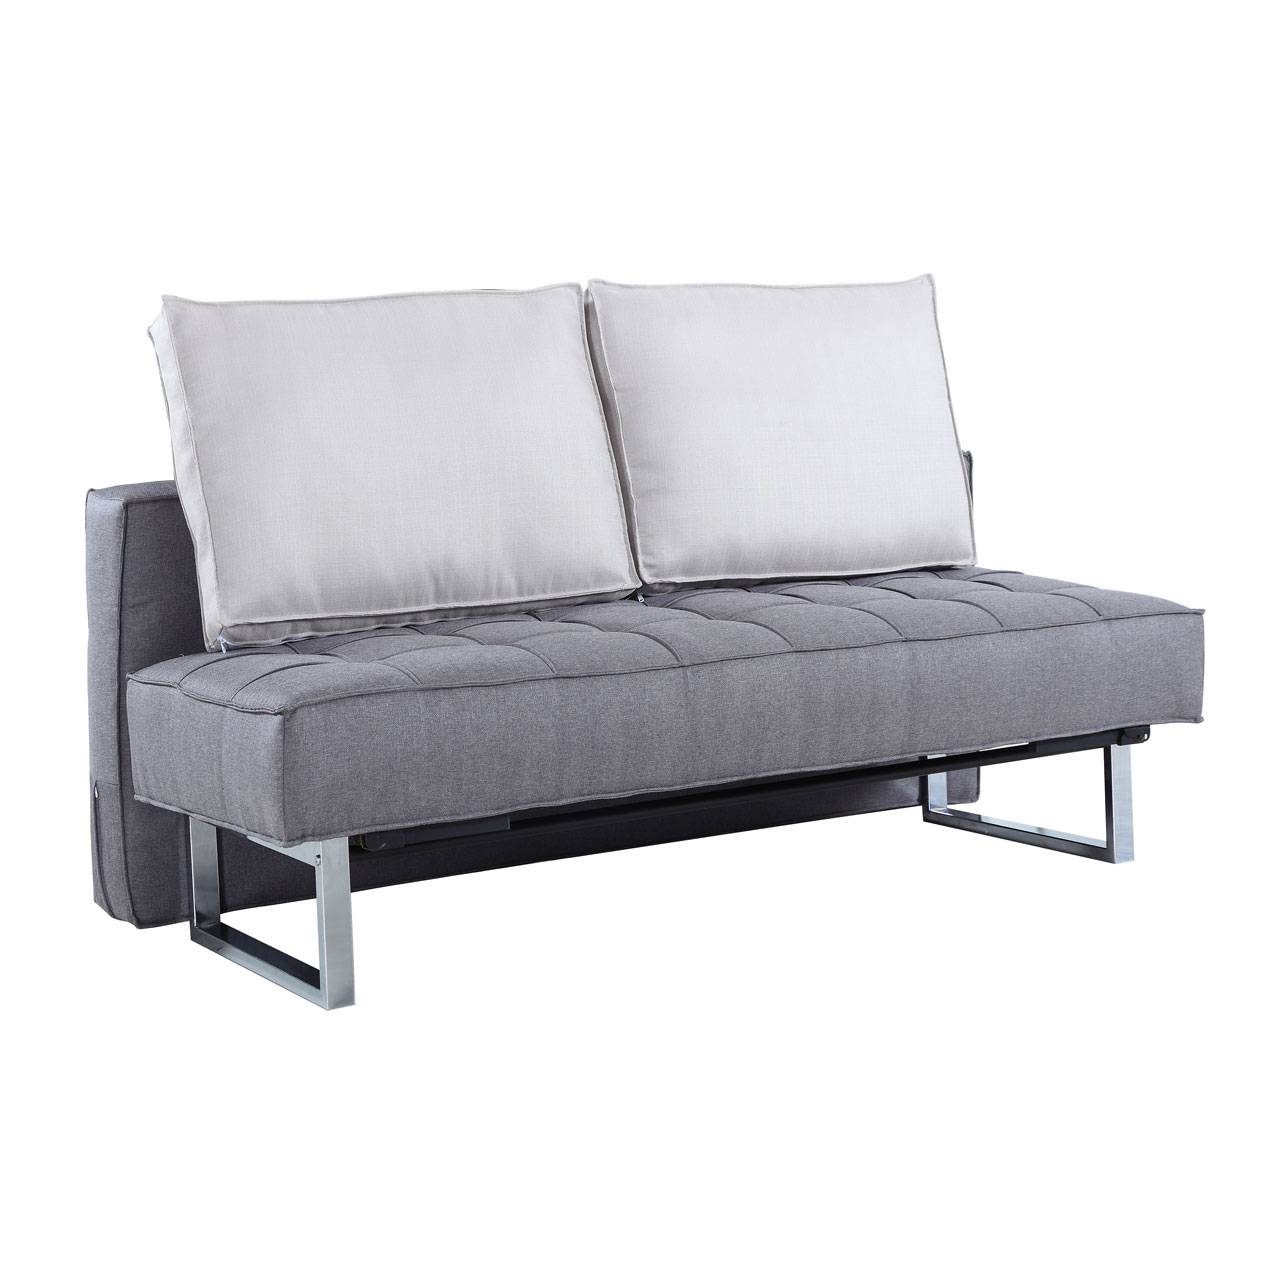 Reclining sofa bed philippines sofa menzilperde net for Sofa bed in philippines